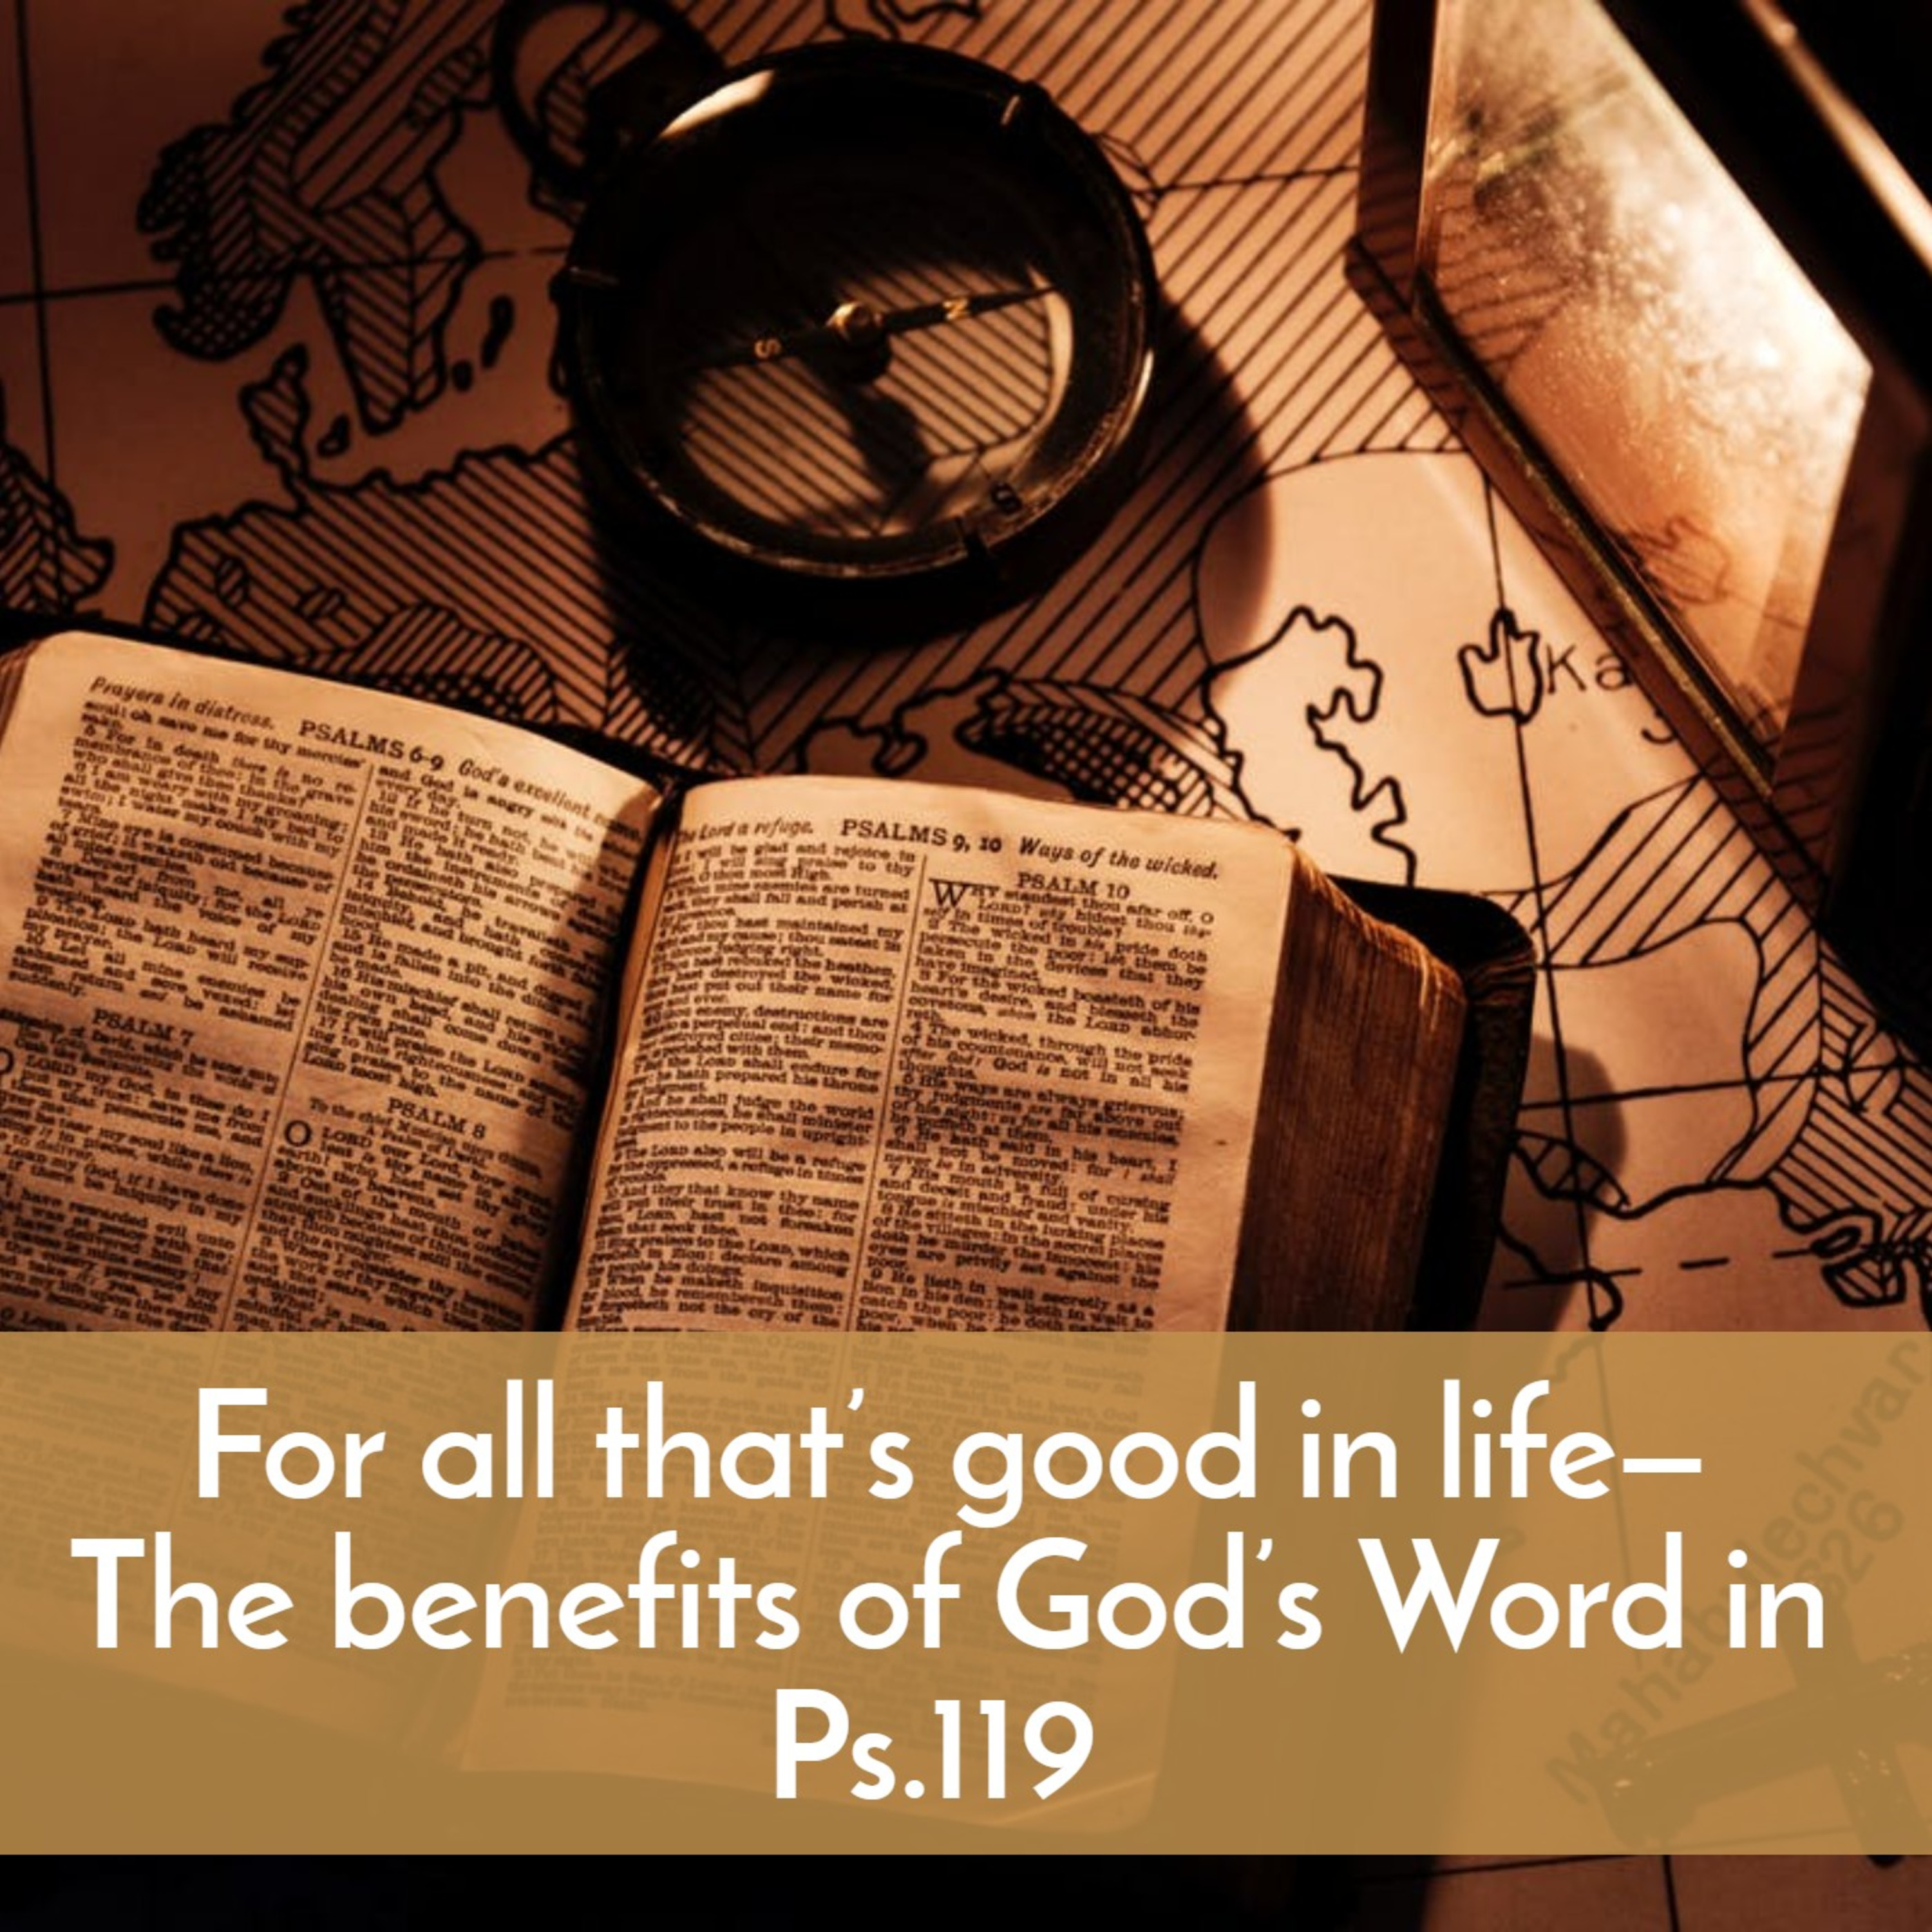 #33 For all that's good in life—The benefits of God's Word in Ps.119